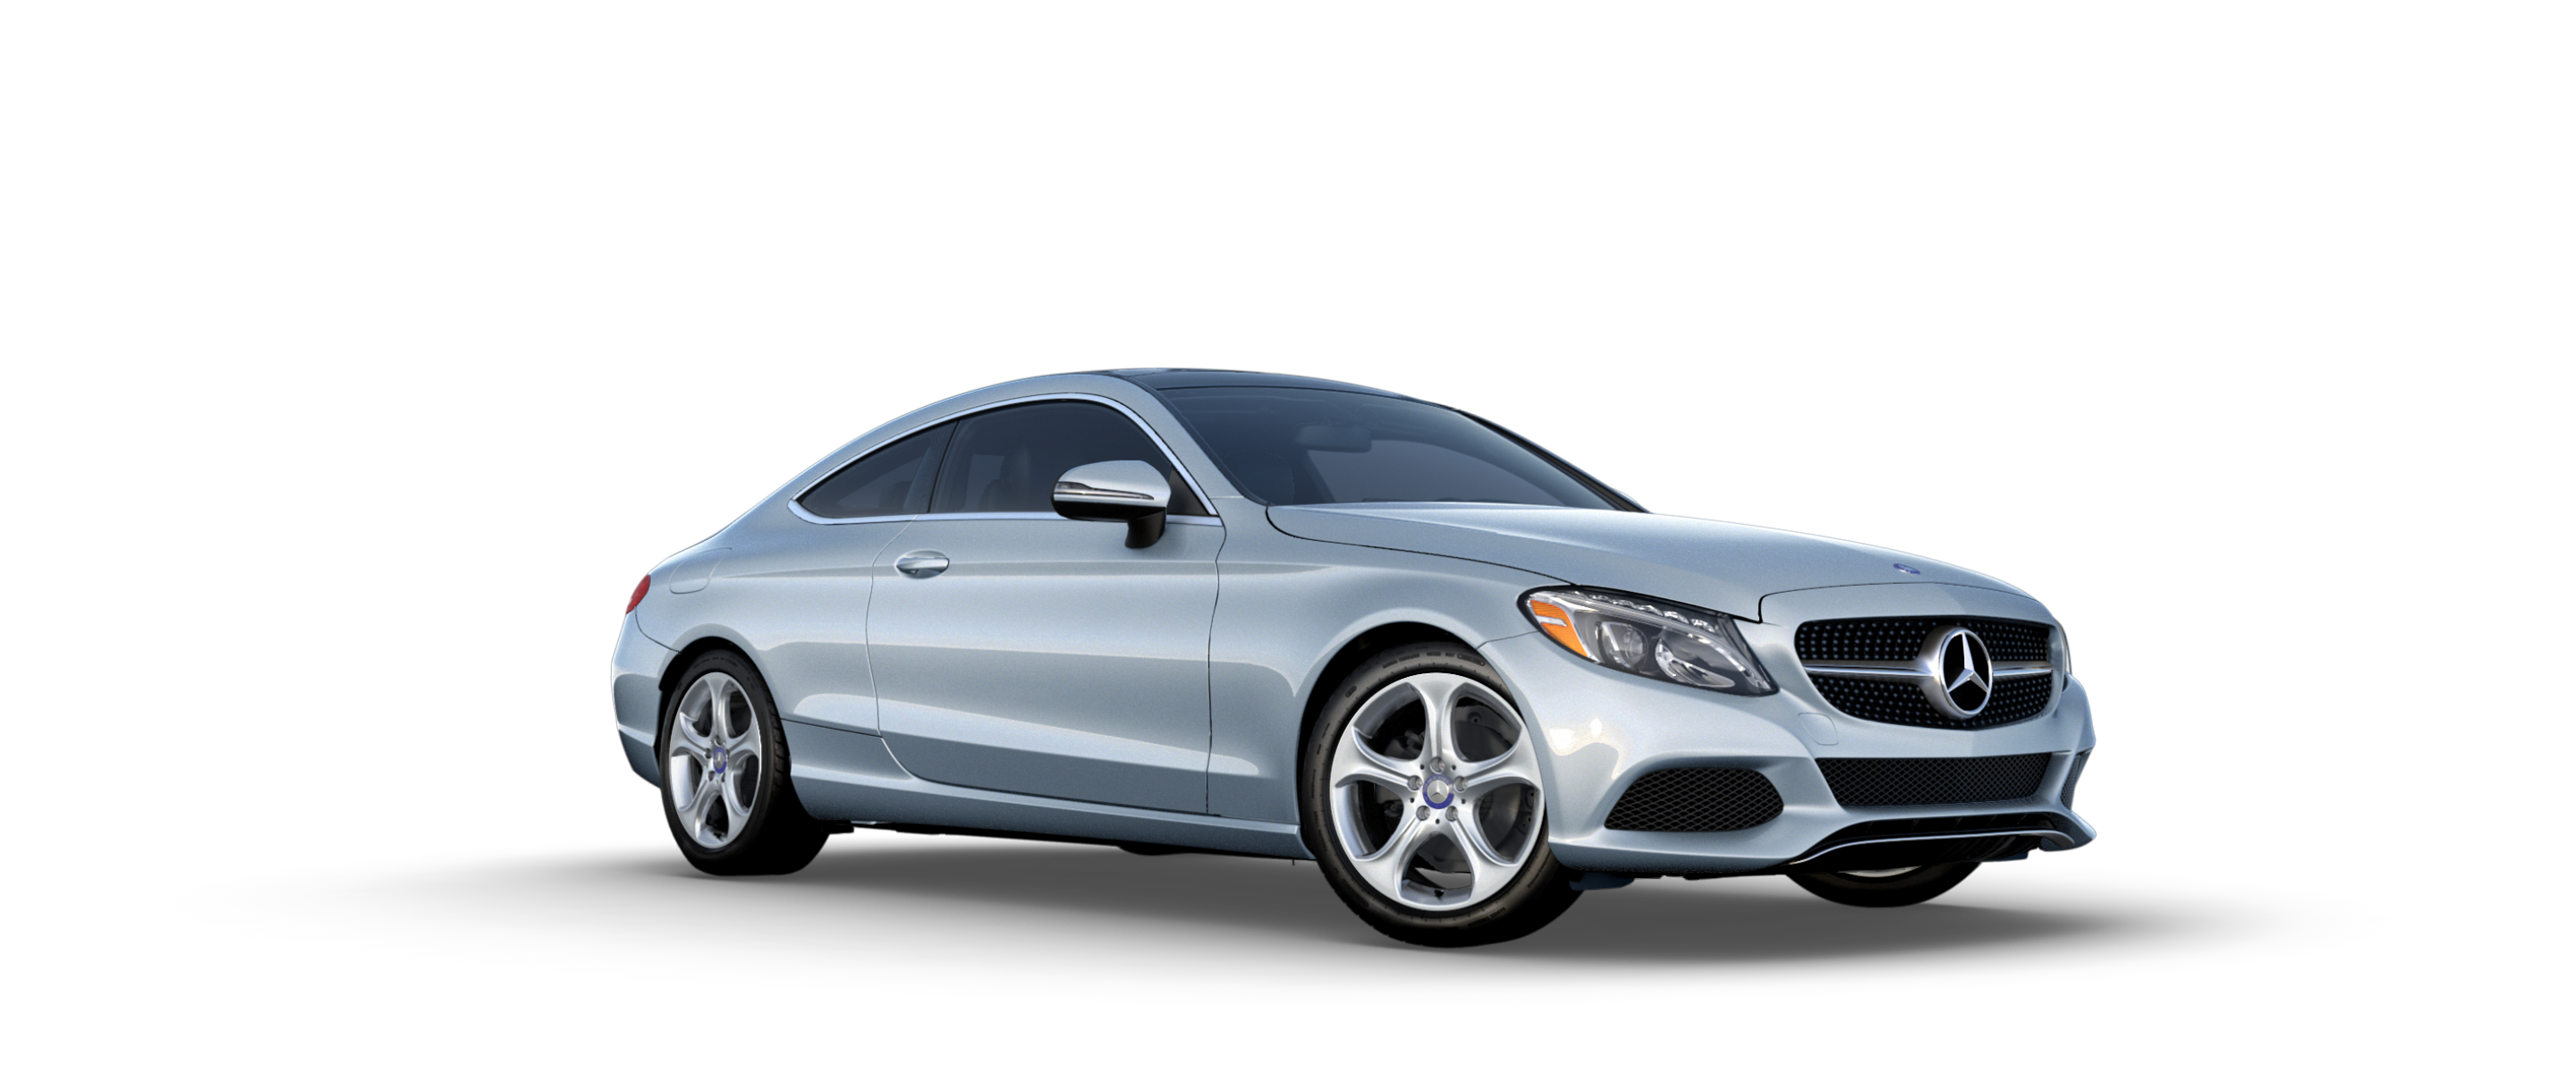 2017 mercedes benz c class exterior color options. Black Bedroom Furniture Sets. Home Design Ideas